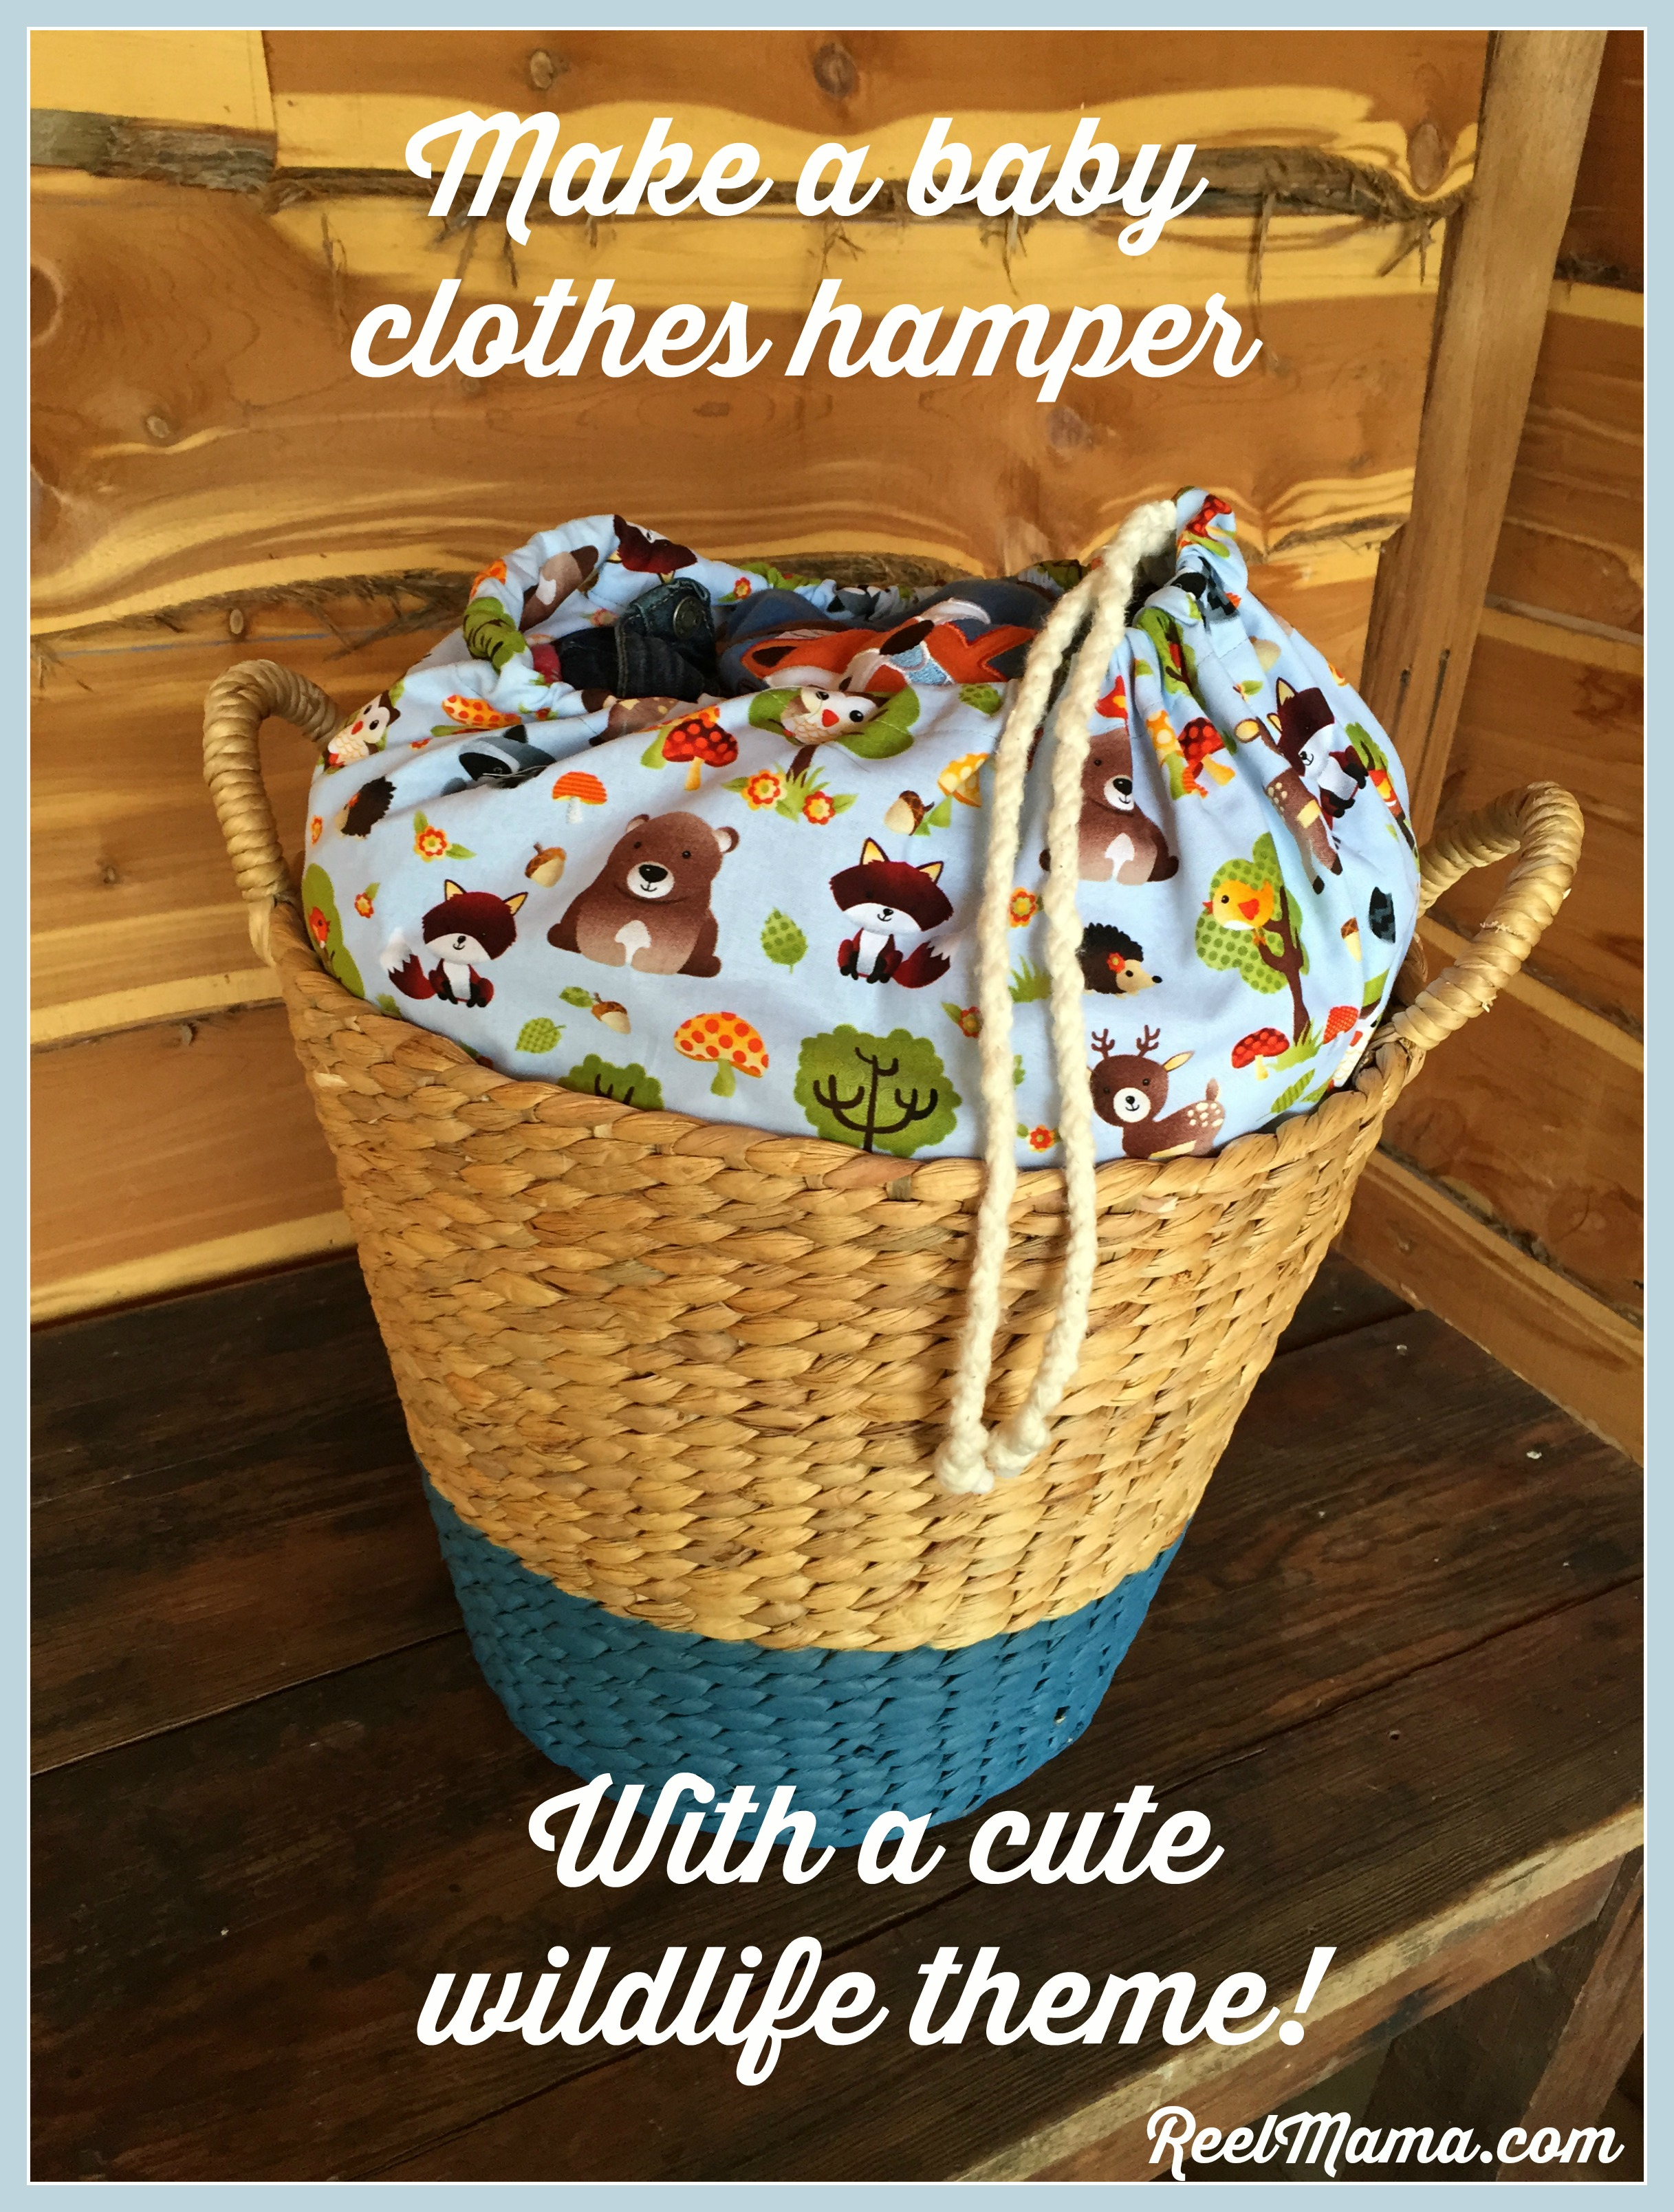 Cute baby clothes hamper with a wildlife theme diy baby clothes hamper with a wildlife theme diy tutorial solutioingenieria Gallery